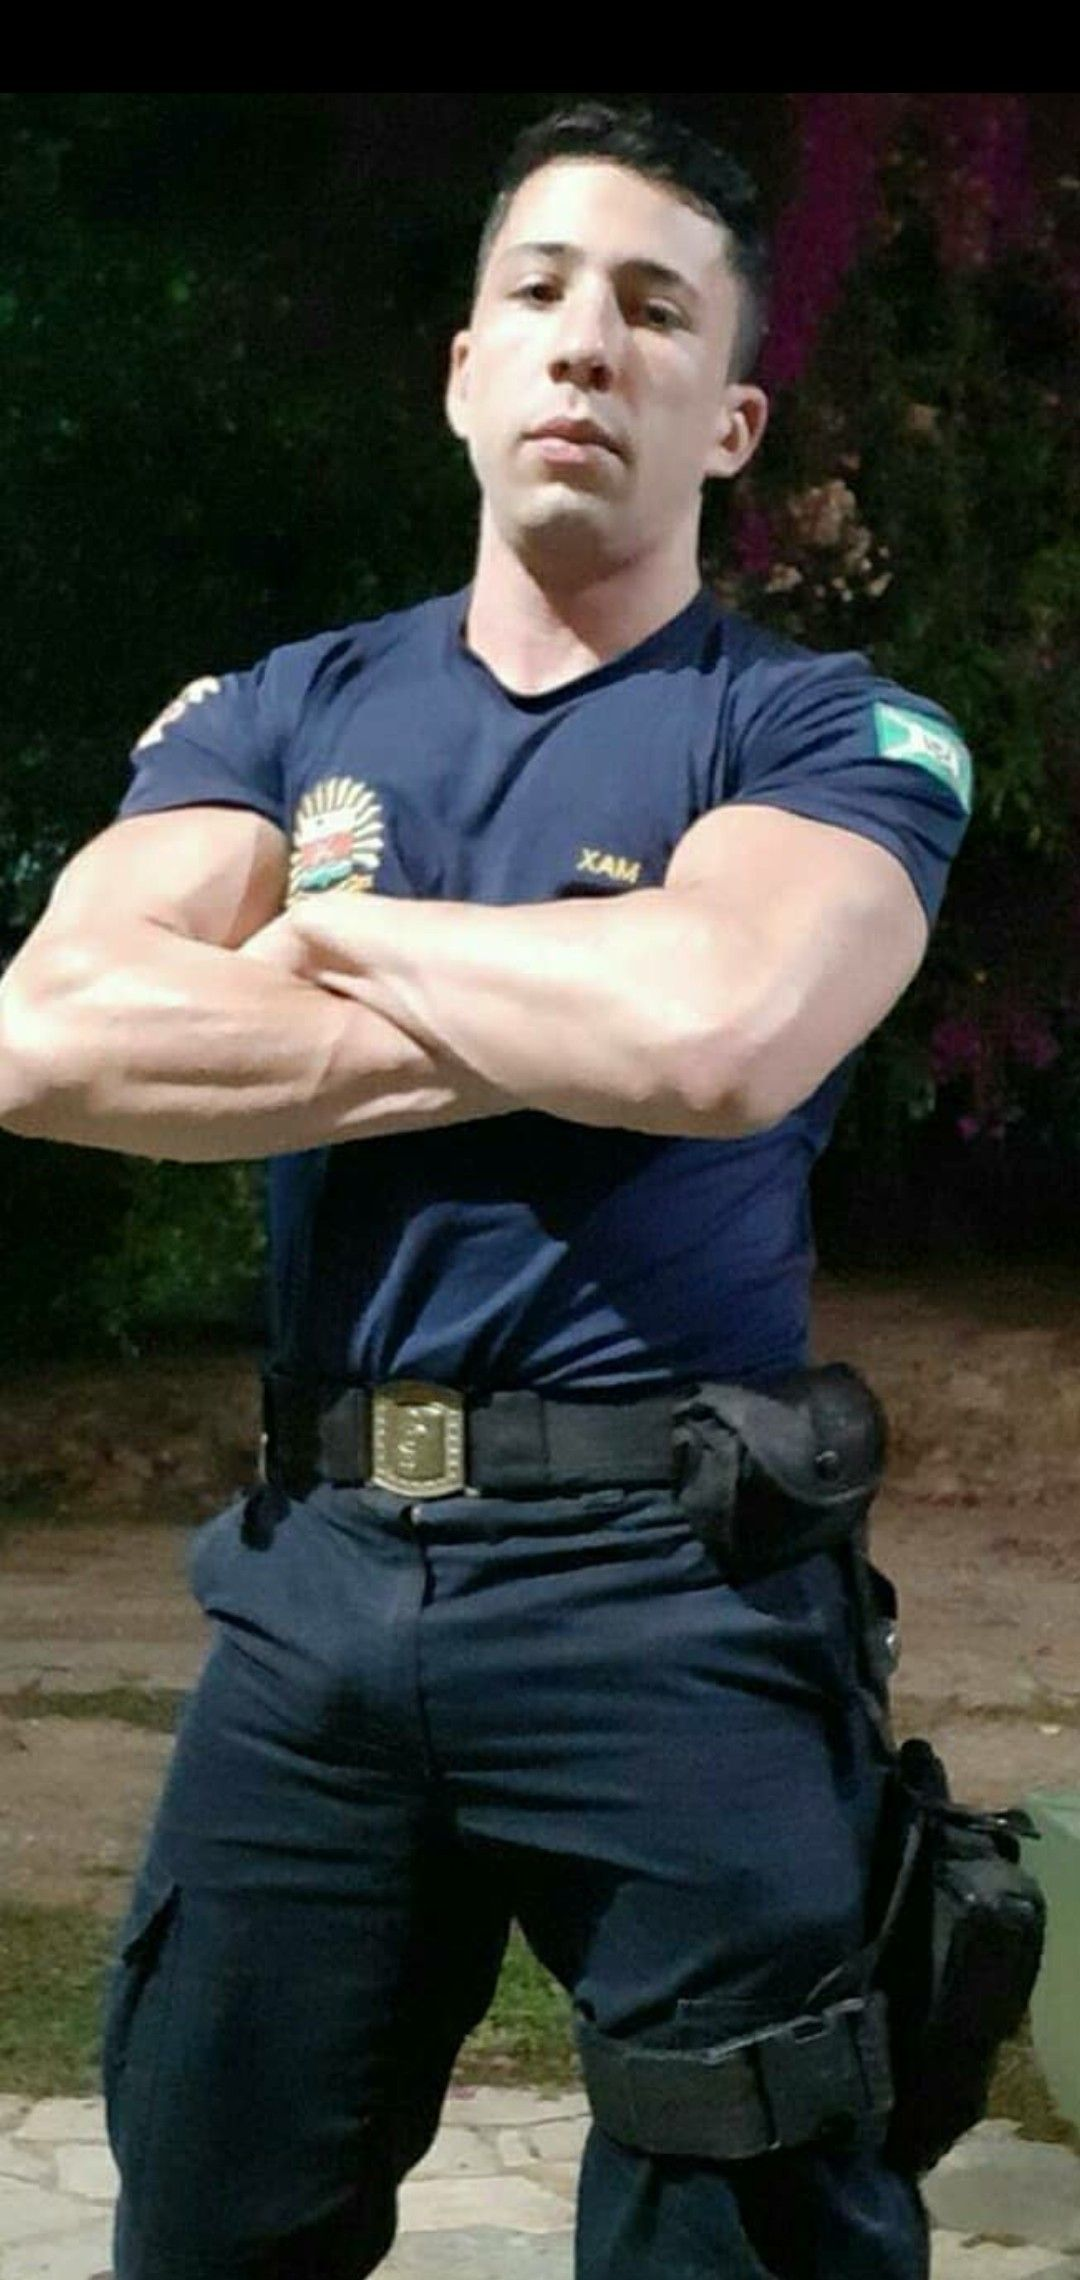 Pin on Hot Military Guys